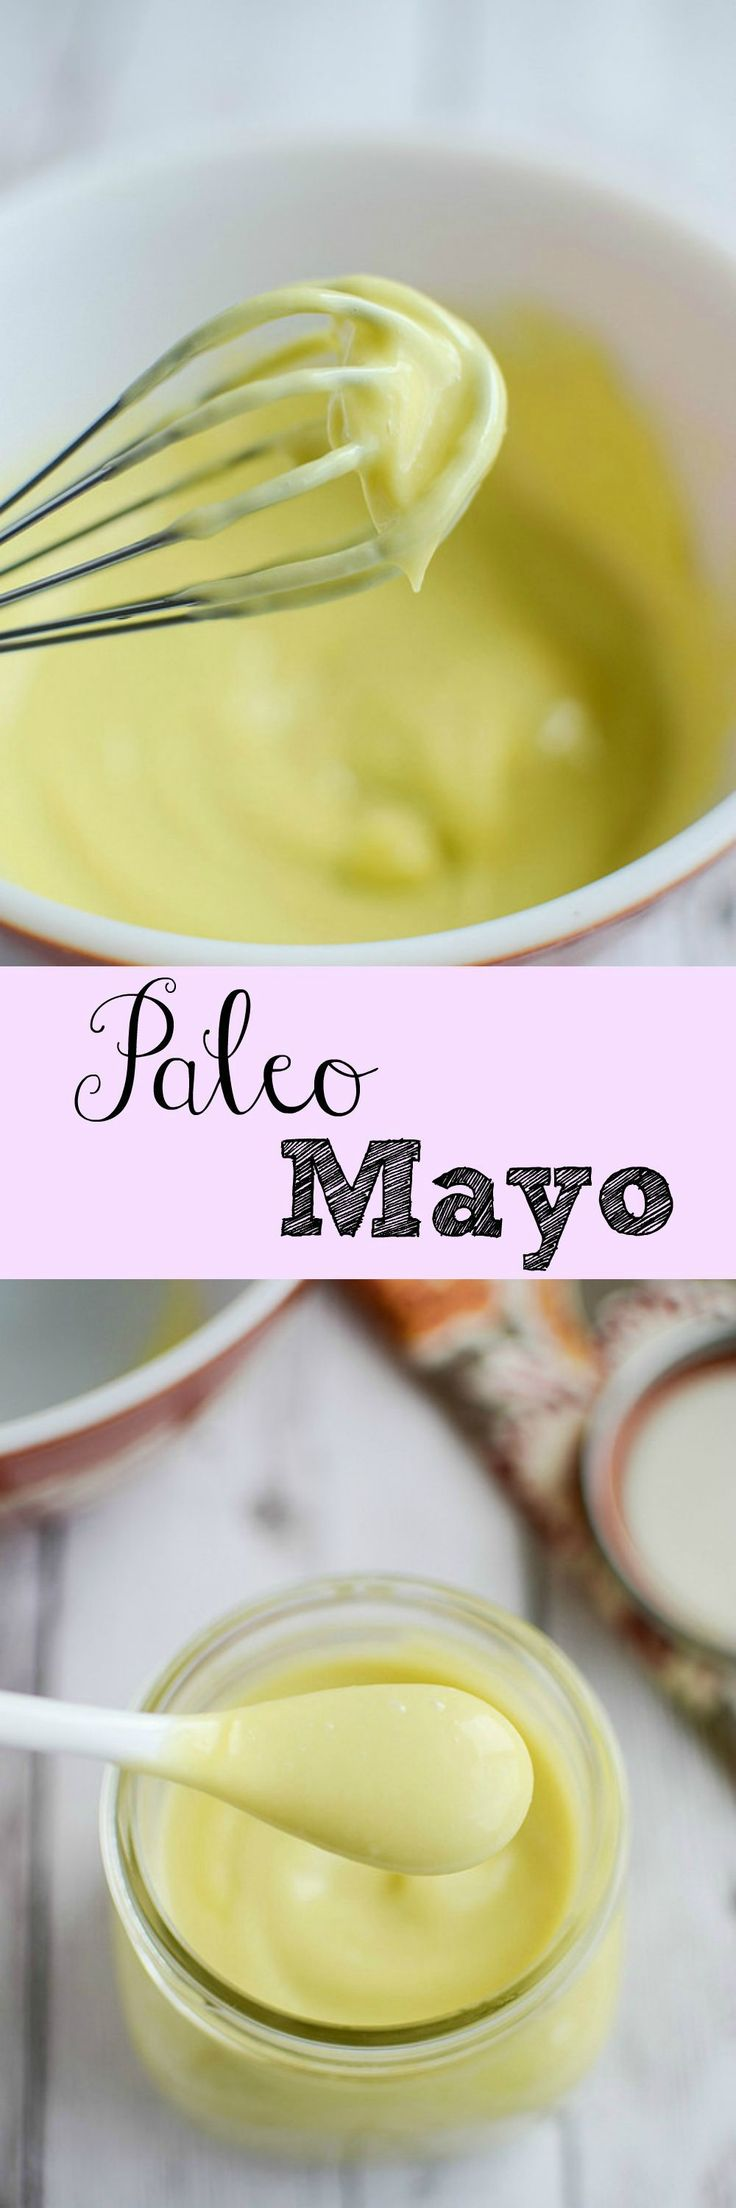 Homemade Paleo Mayo - you won't believe how easy this homemade mayo recipe is!